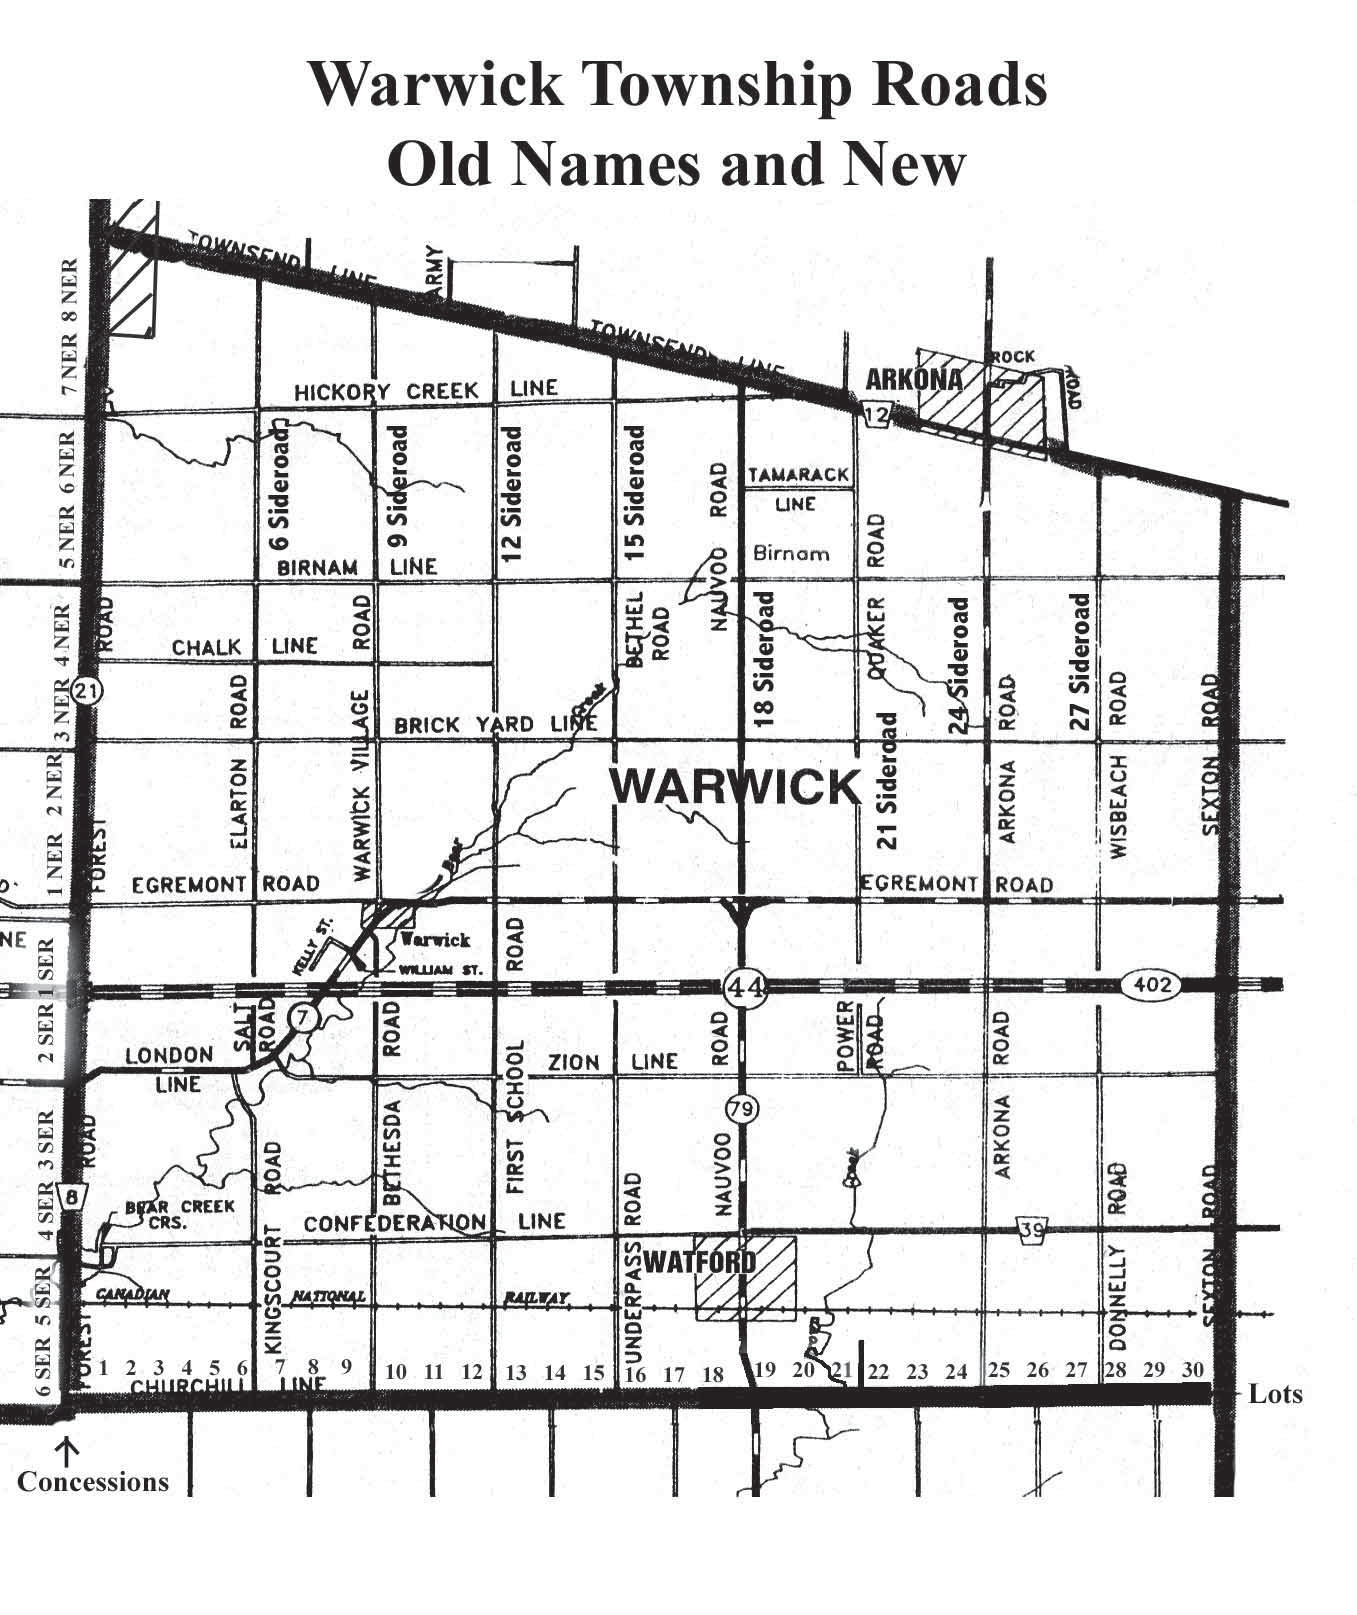 Warwick Township Roads, Old Names and New